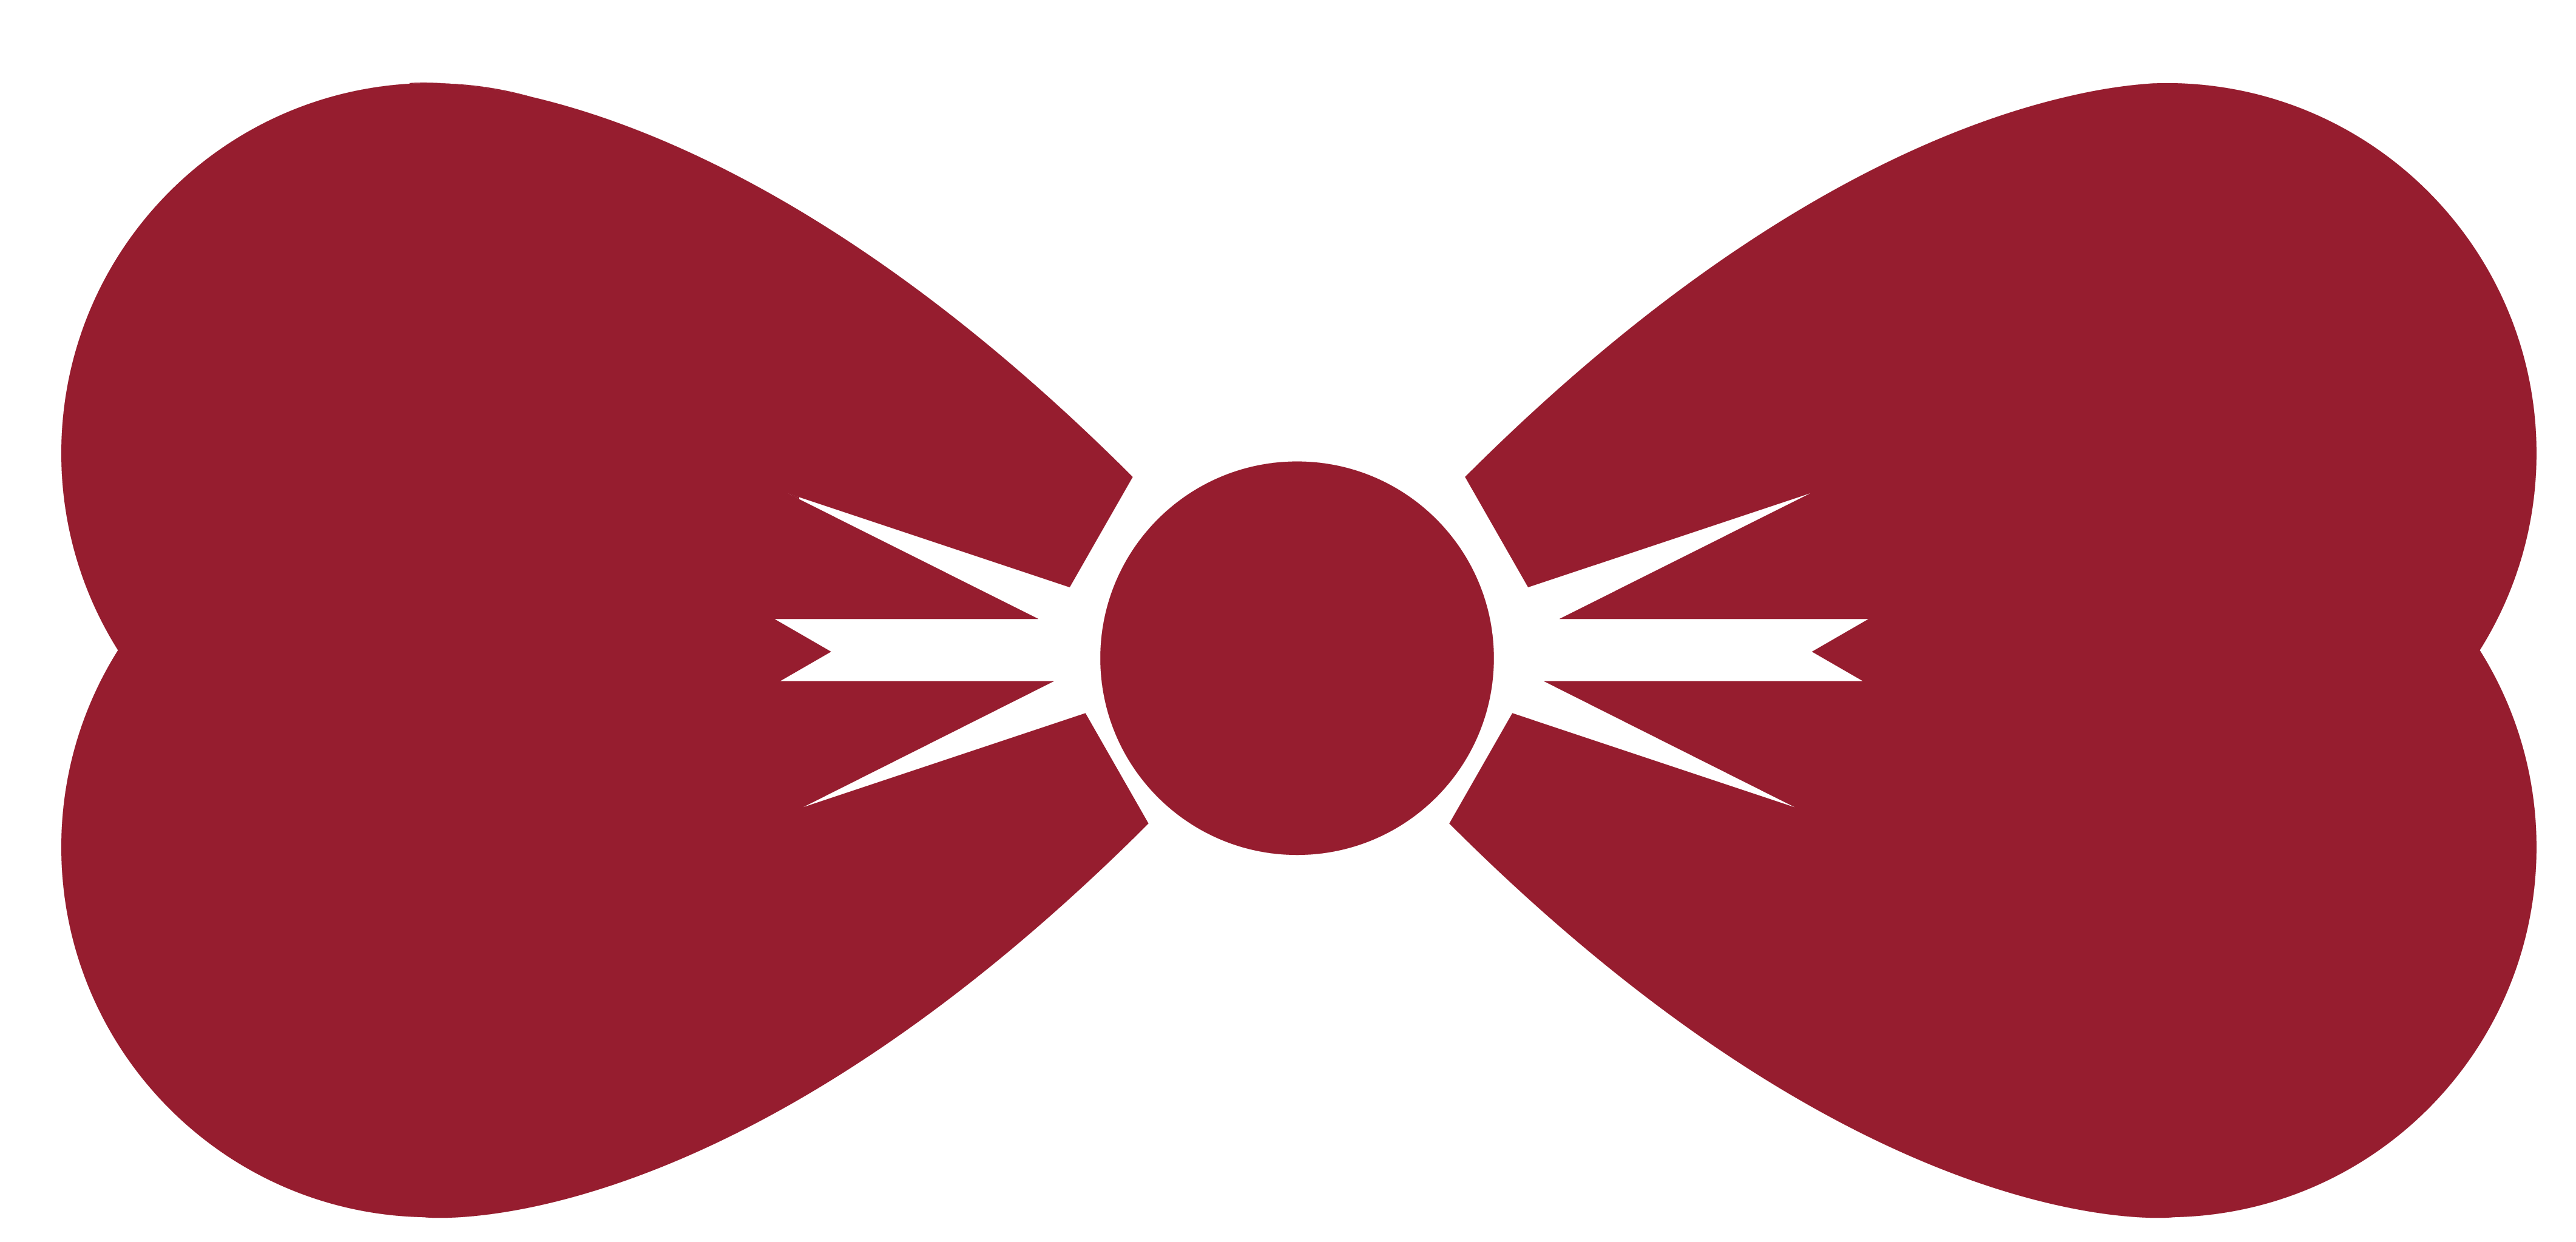 The Red Bow Chronicle